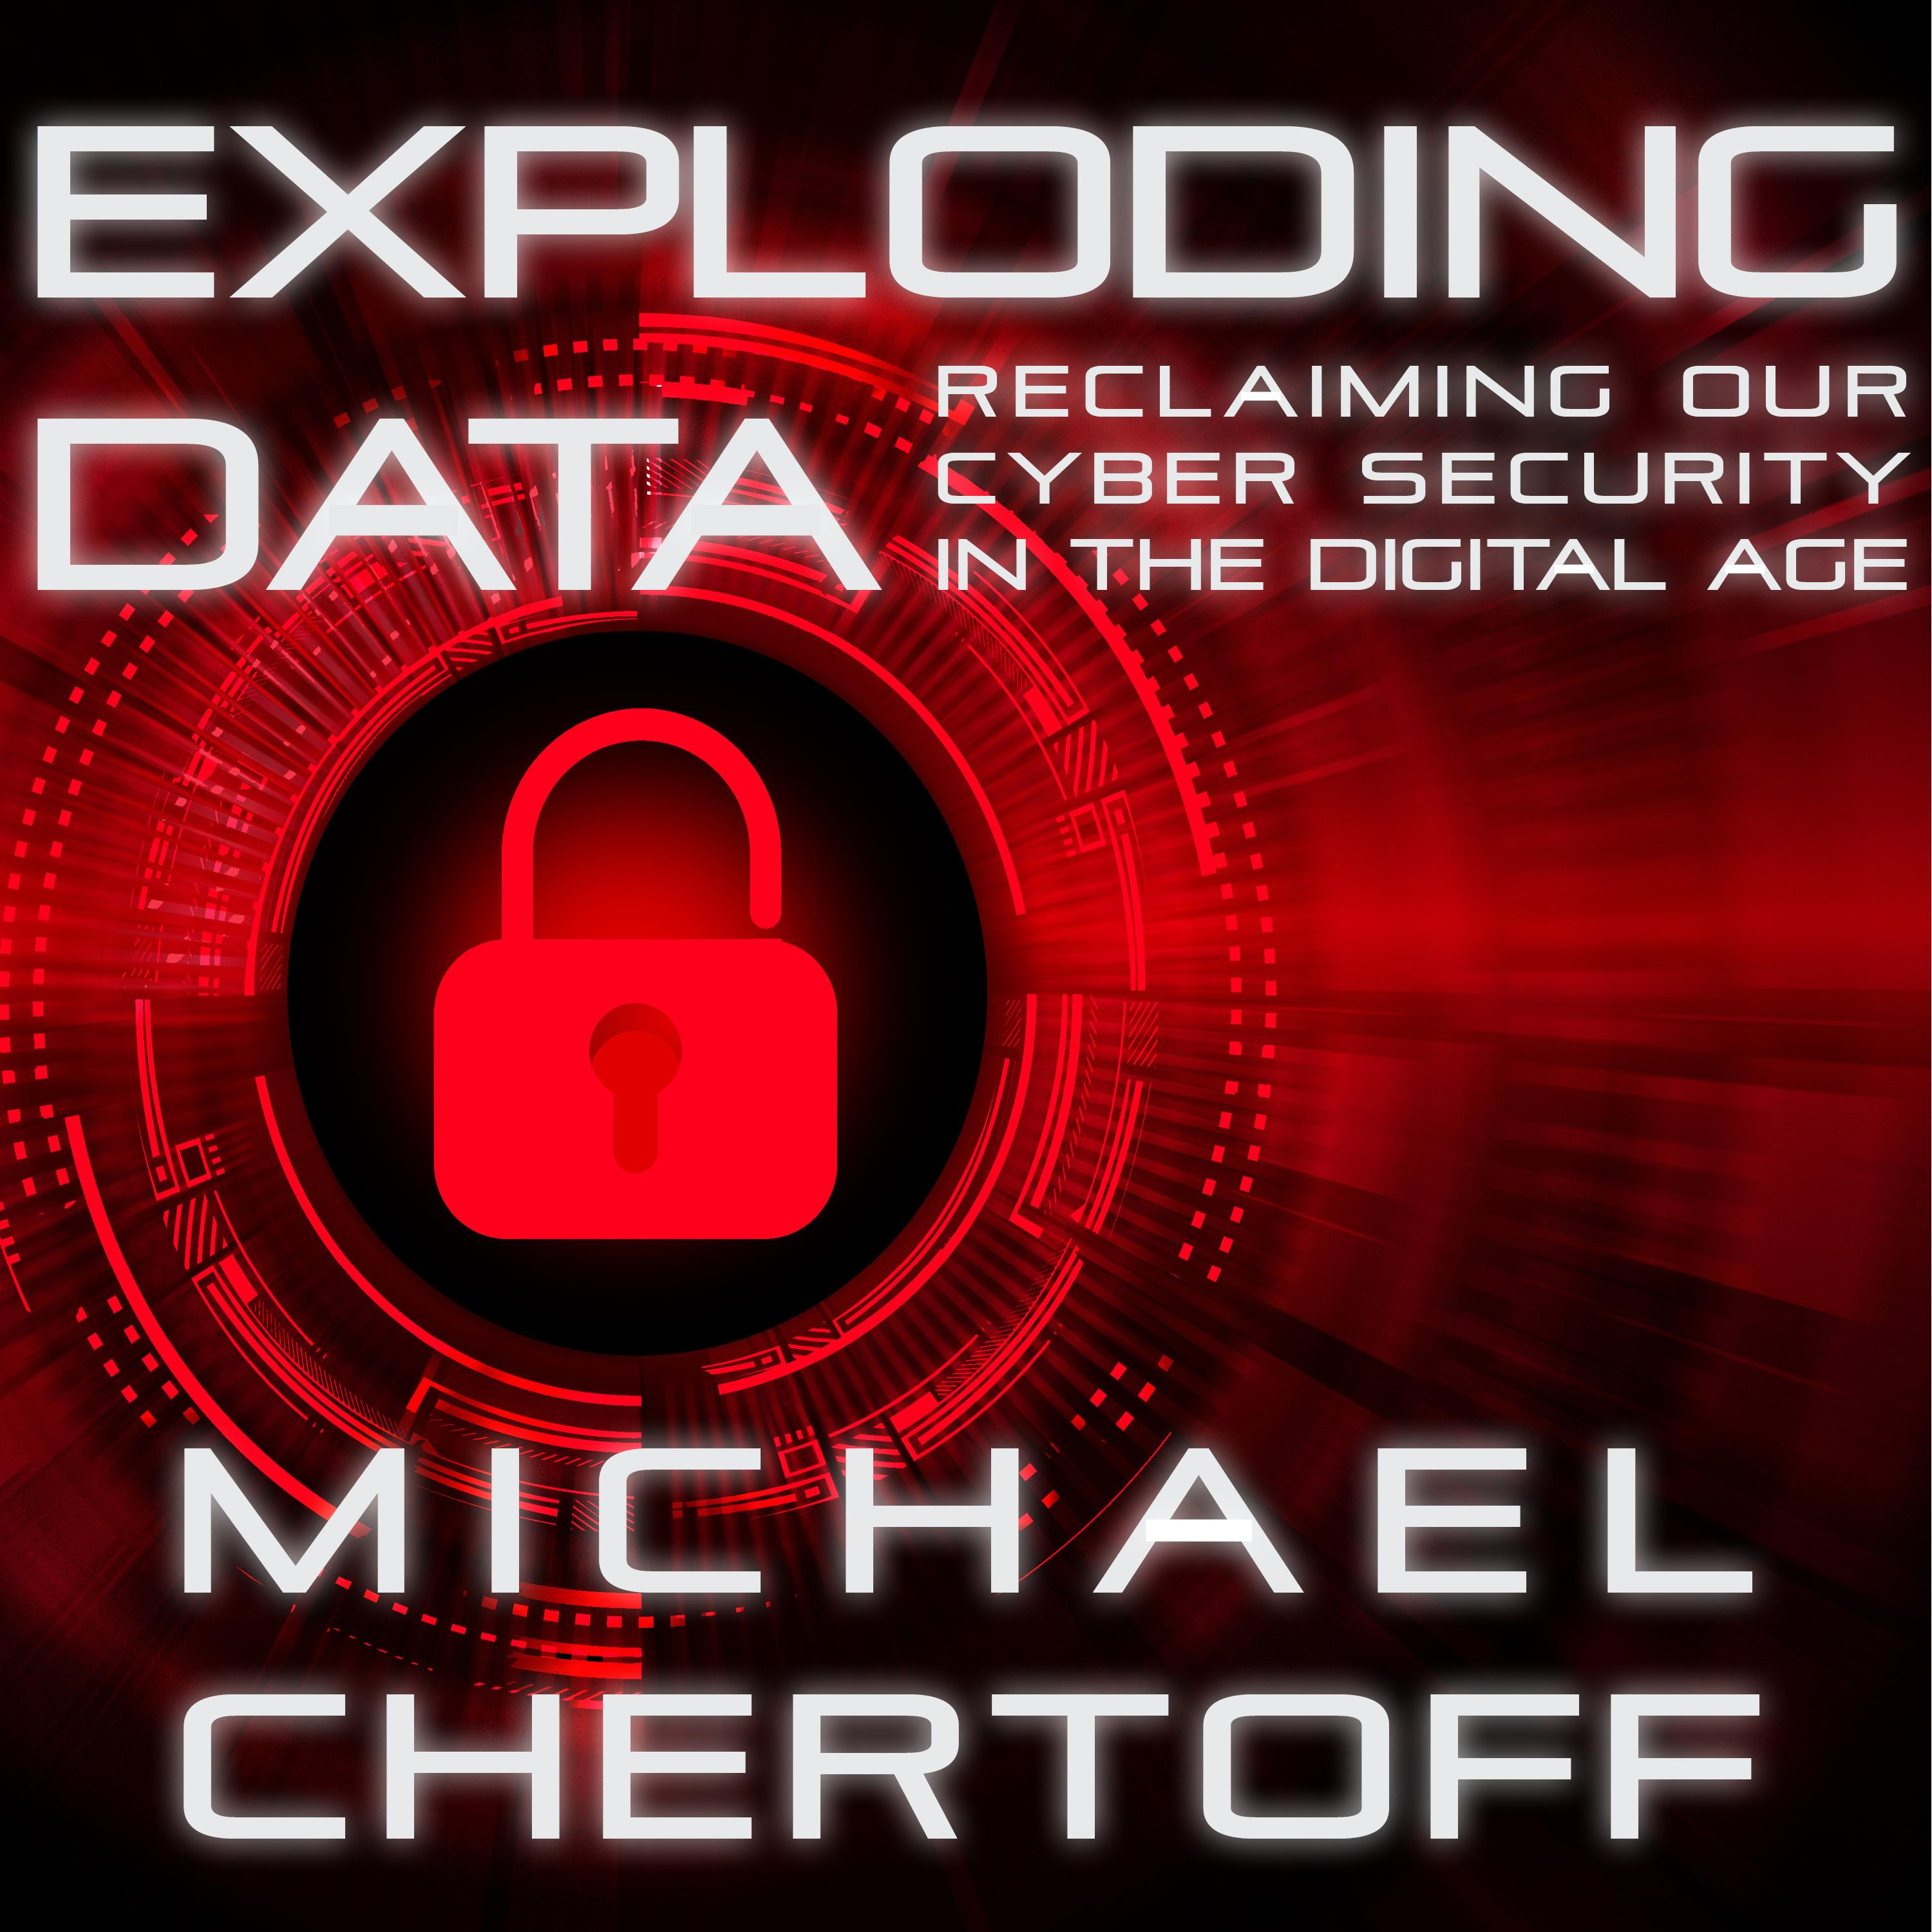 Exploding Data: Reclaiming Our Cyber Security in the Digital Age (Audiobook)